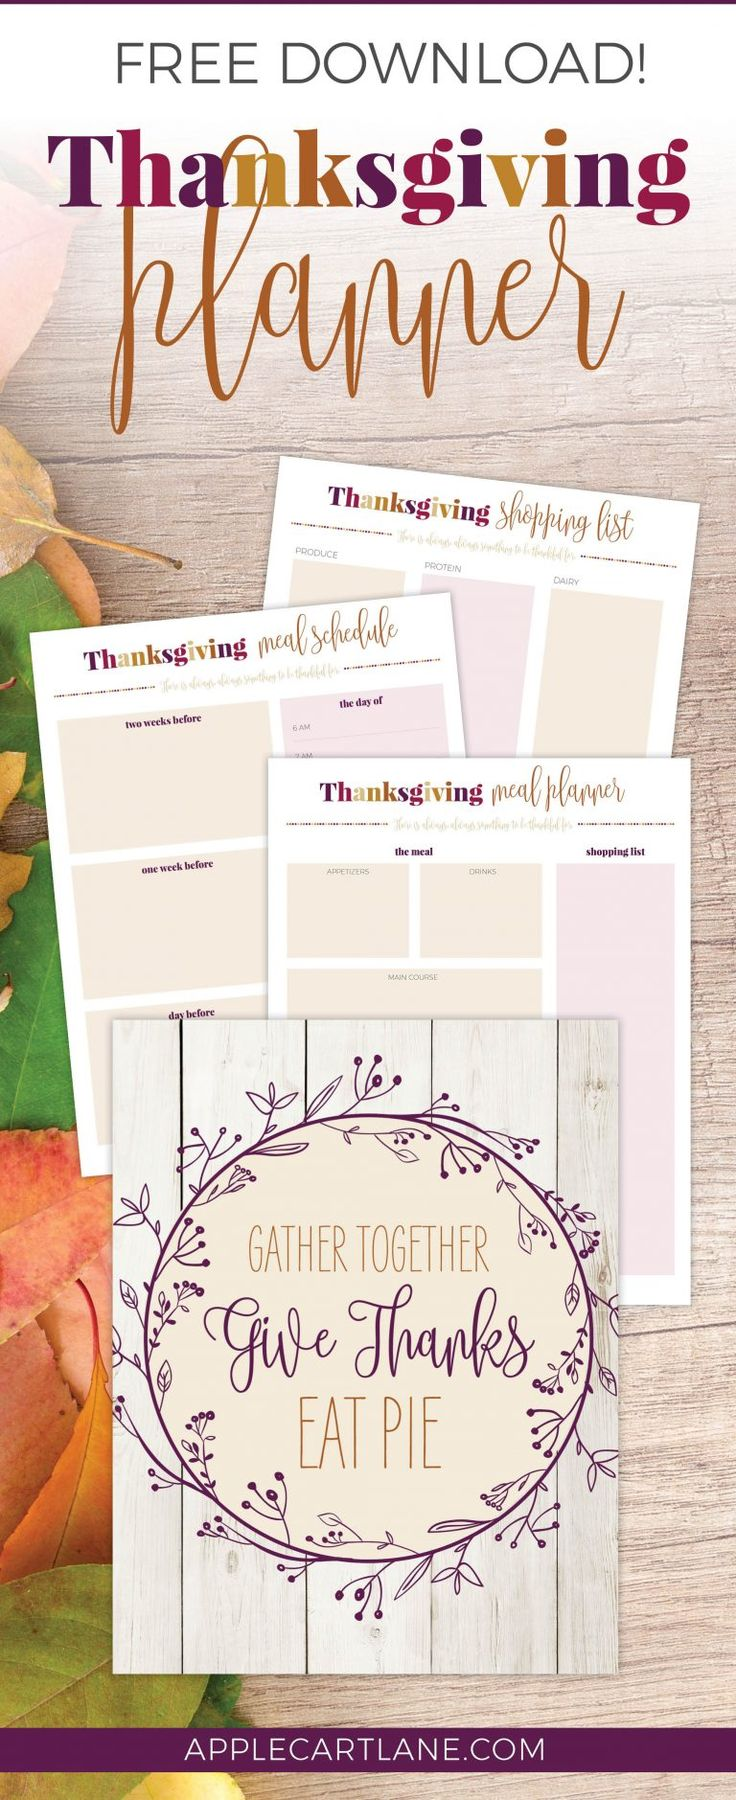 This is exactly what I needed! Functional (and fun!) Thanksgiving Planner printable. Includes a thanksgiving meal planner, thanksgiving shopping list, thanksgiving place cards and more! Now to just nail down all a thanksgiving recipe or two:)